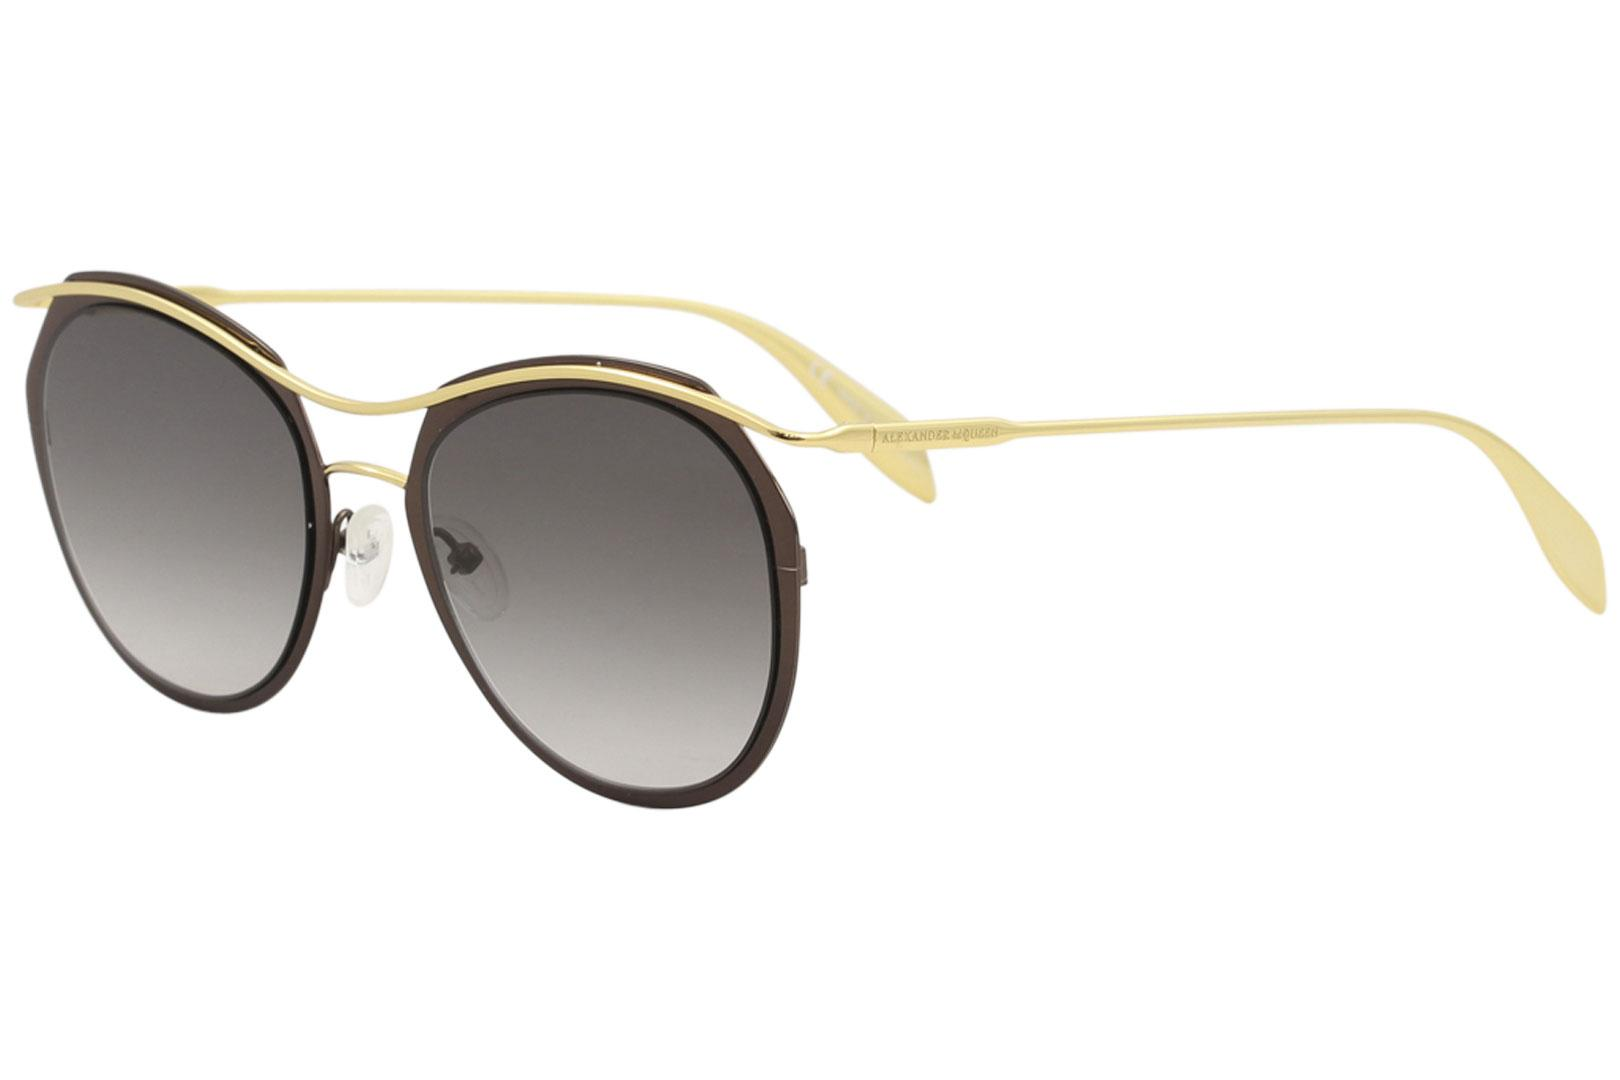 Image of Alexander McQueen Edge AM0116S AM/0116/S 001 Brown/Gold Pilot Sunglasses 54mm - Brown Gold/GrayGradient   001 - Lens 54 Bridge 21 Temple 145mm